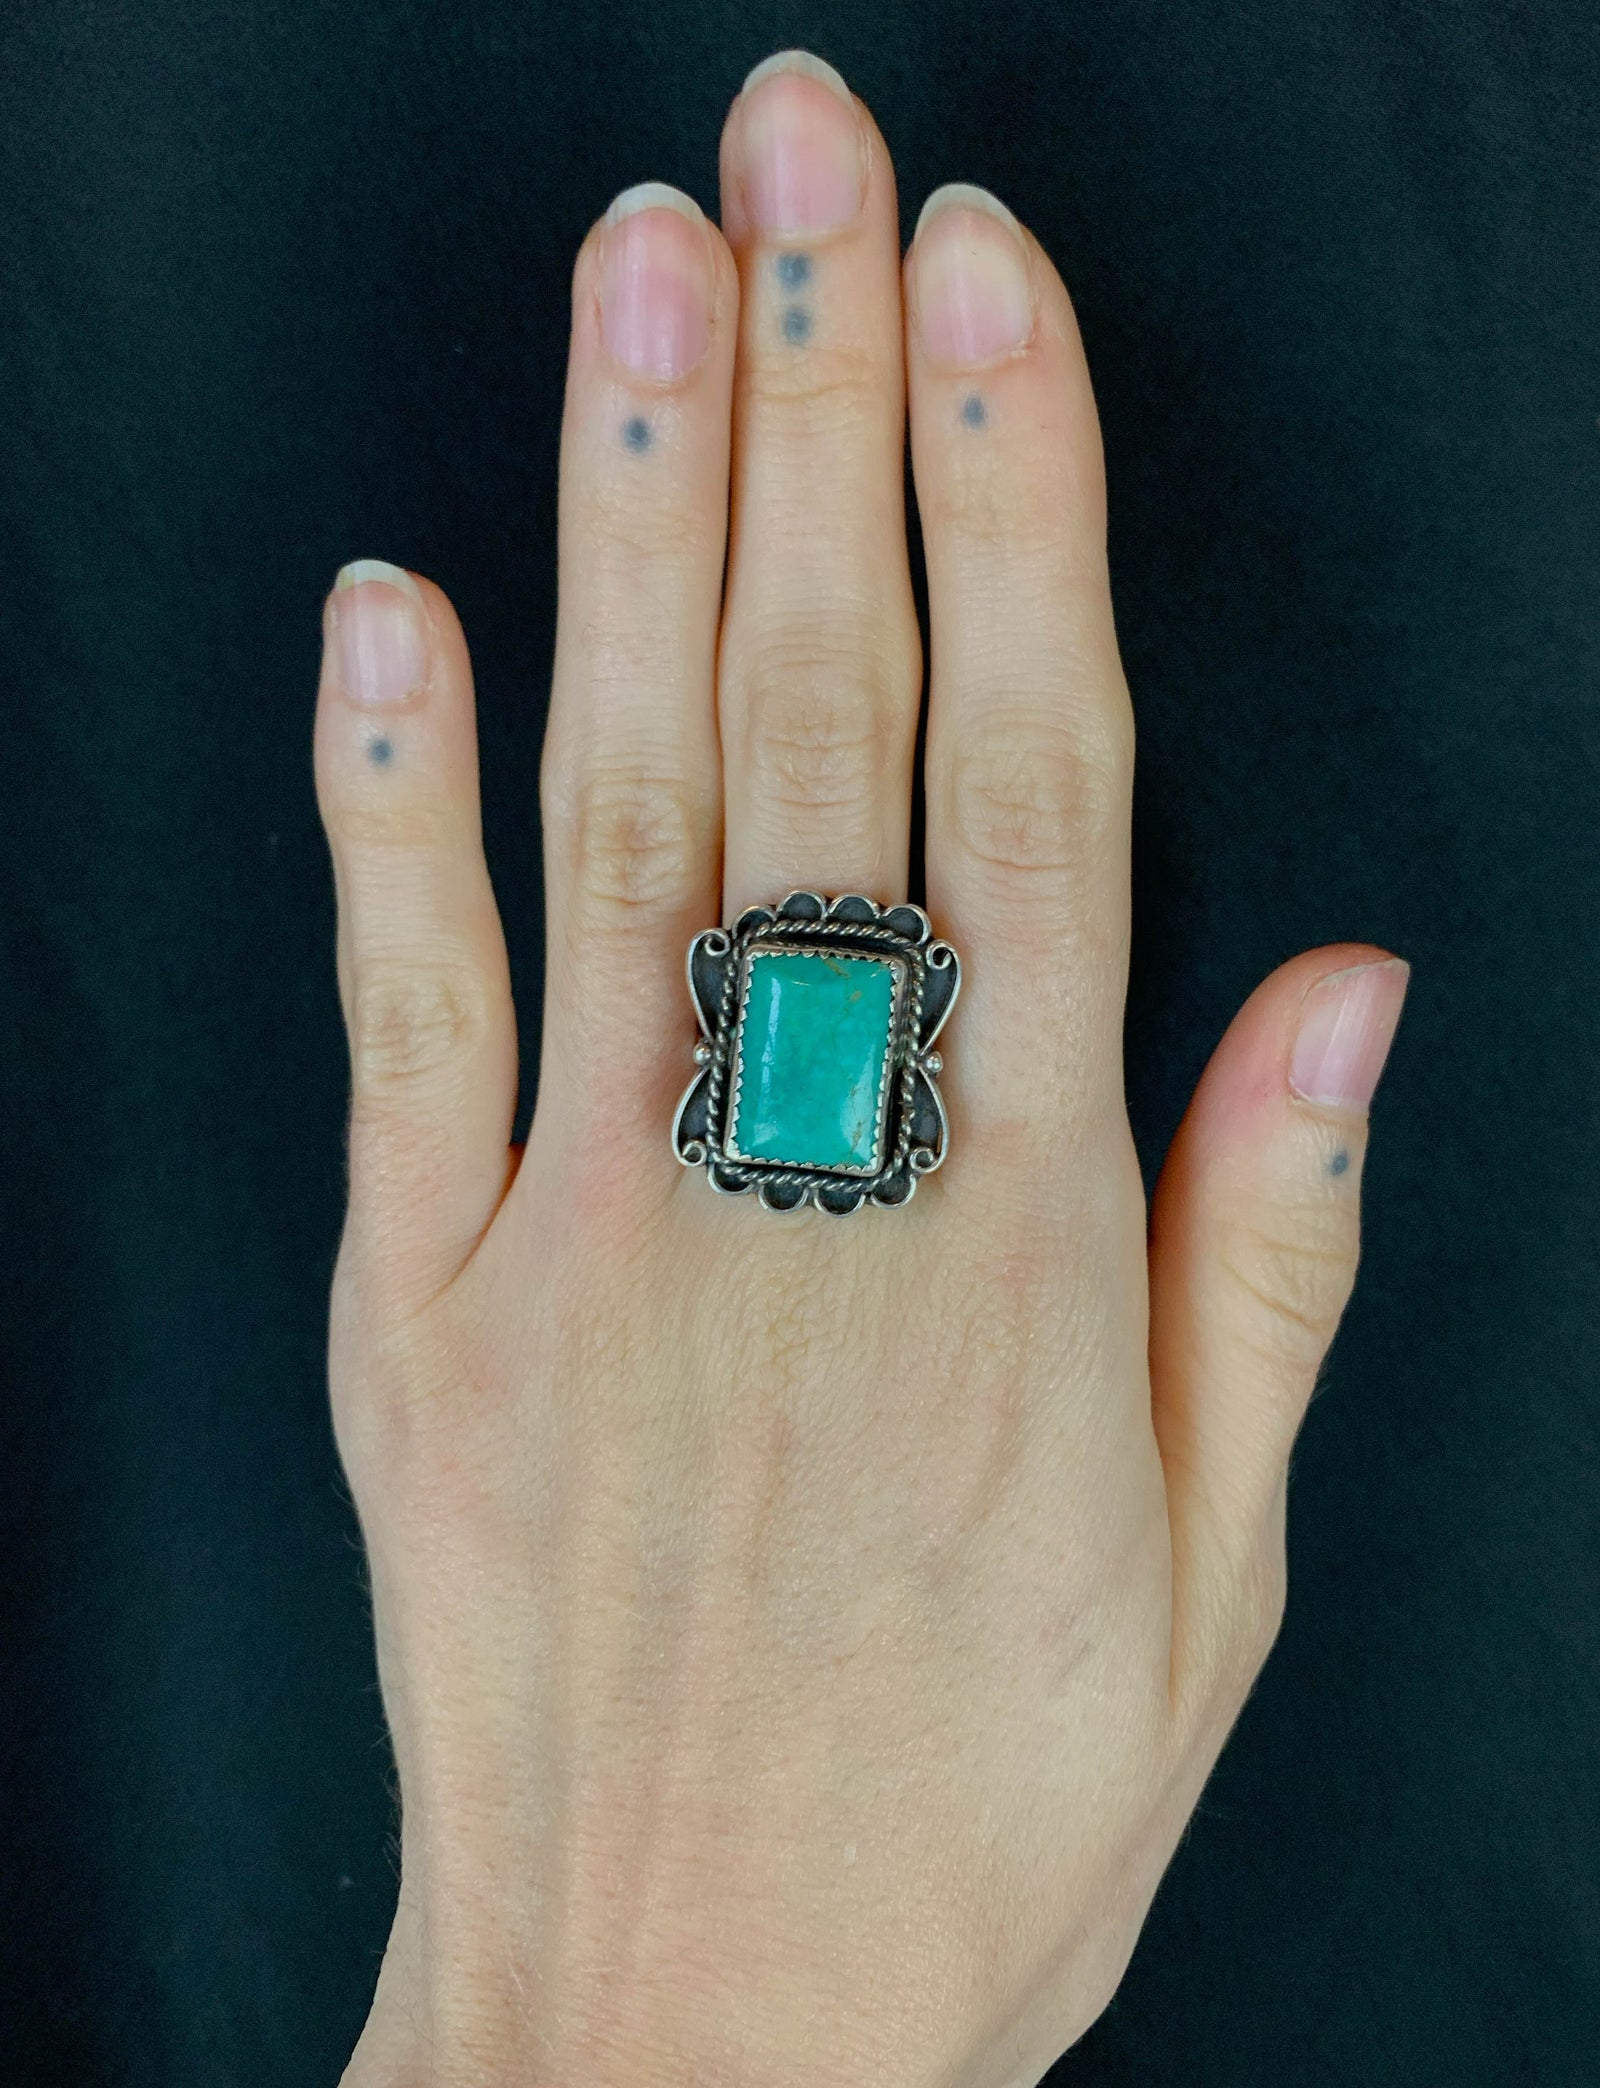 Vintage Sterling Silver Turquoise Square Ring - Size 9